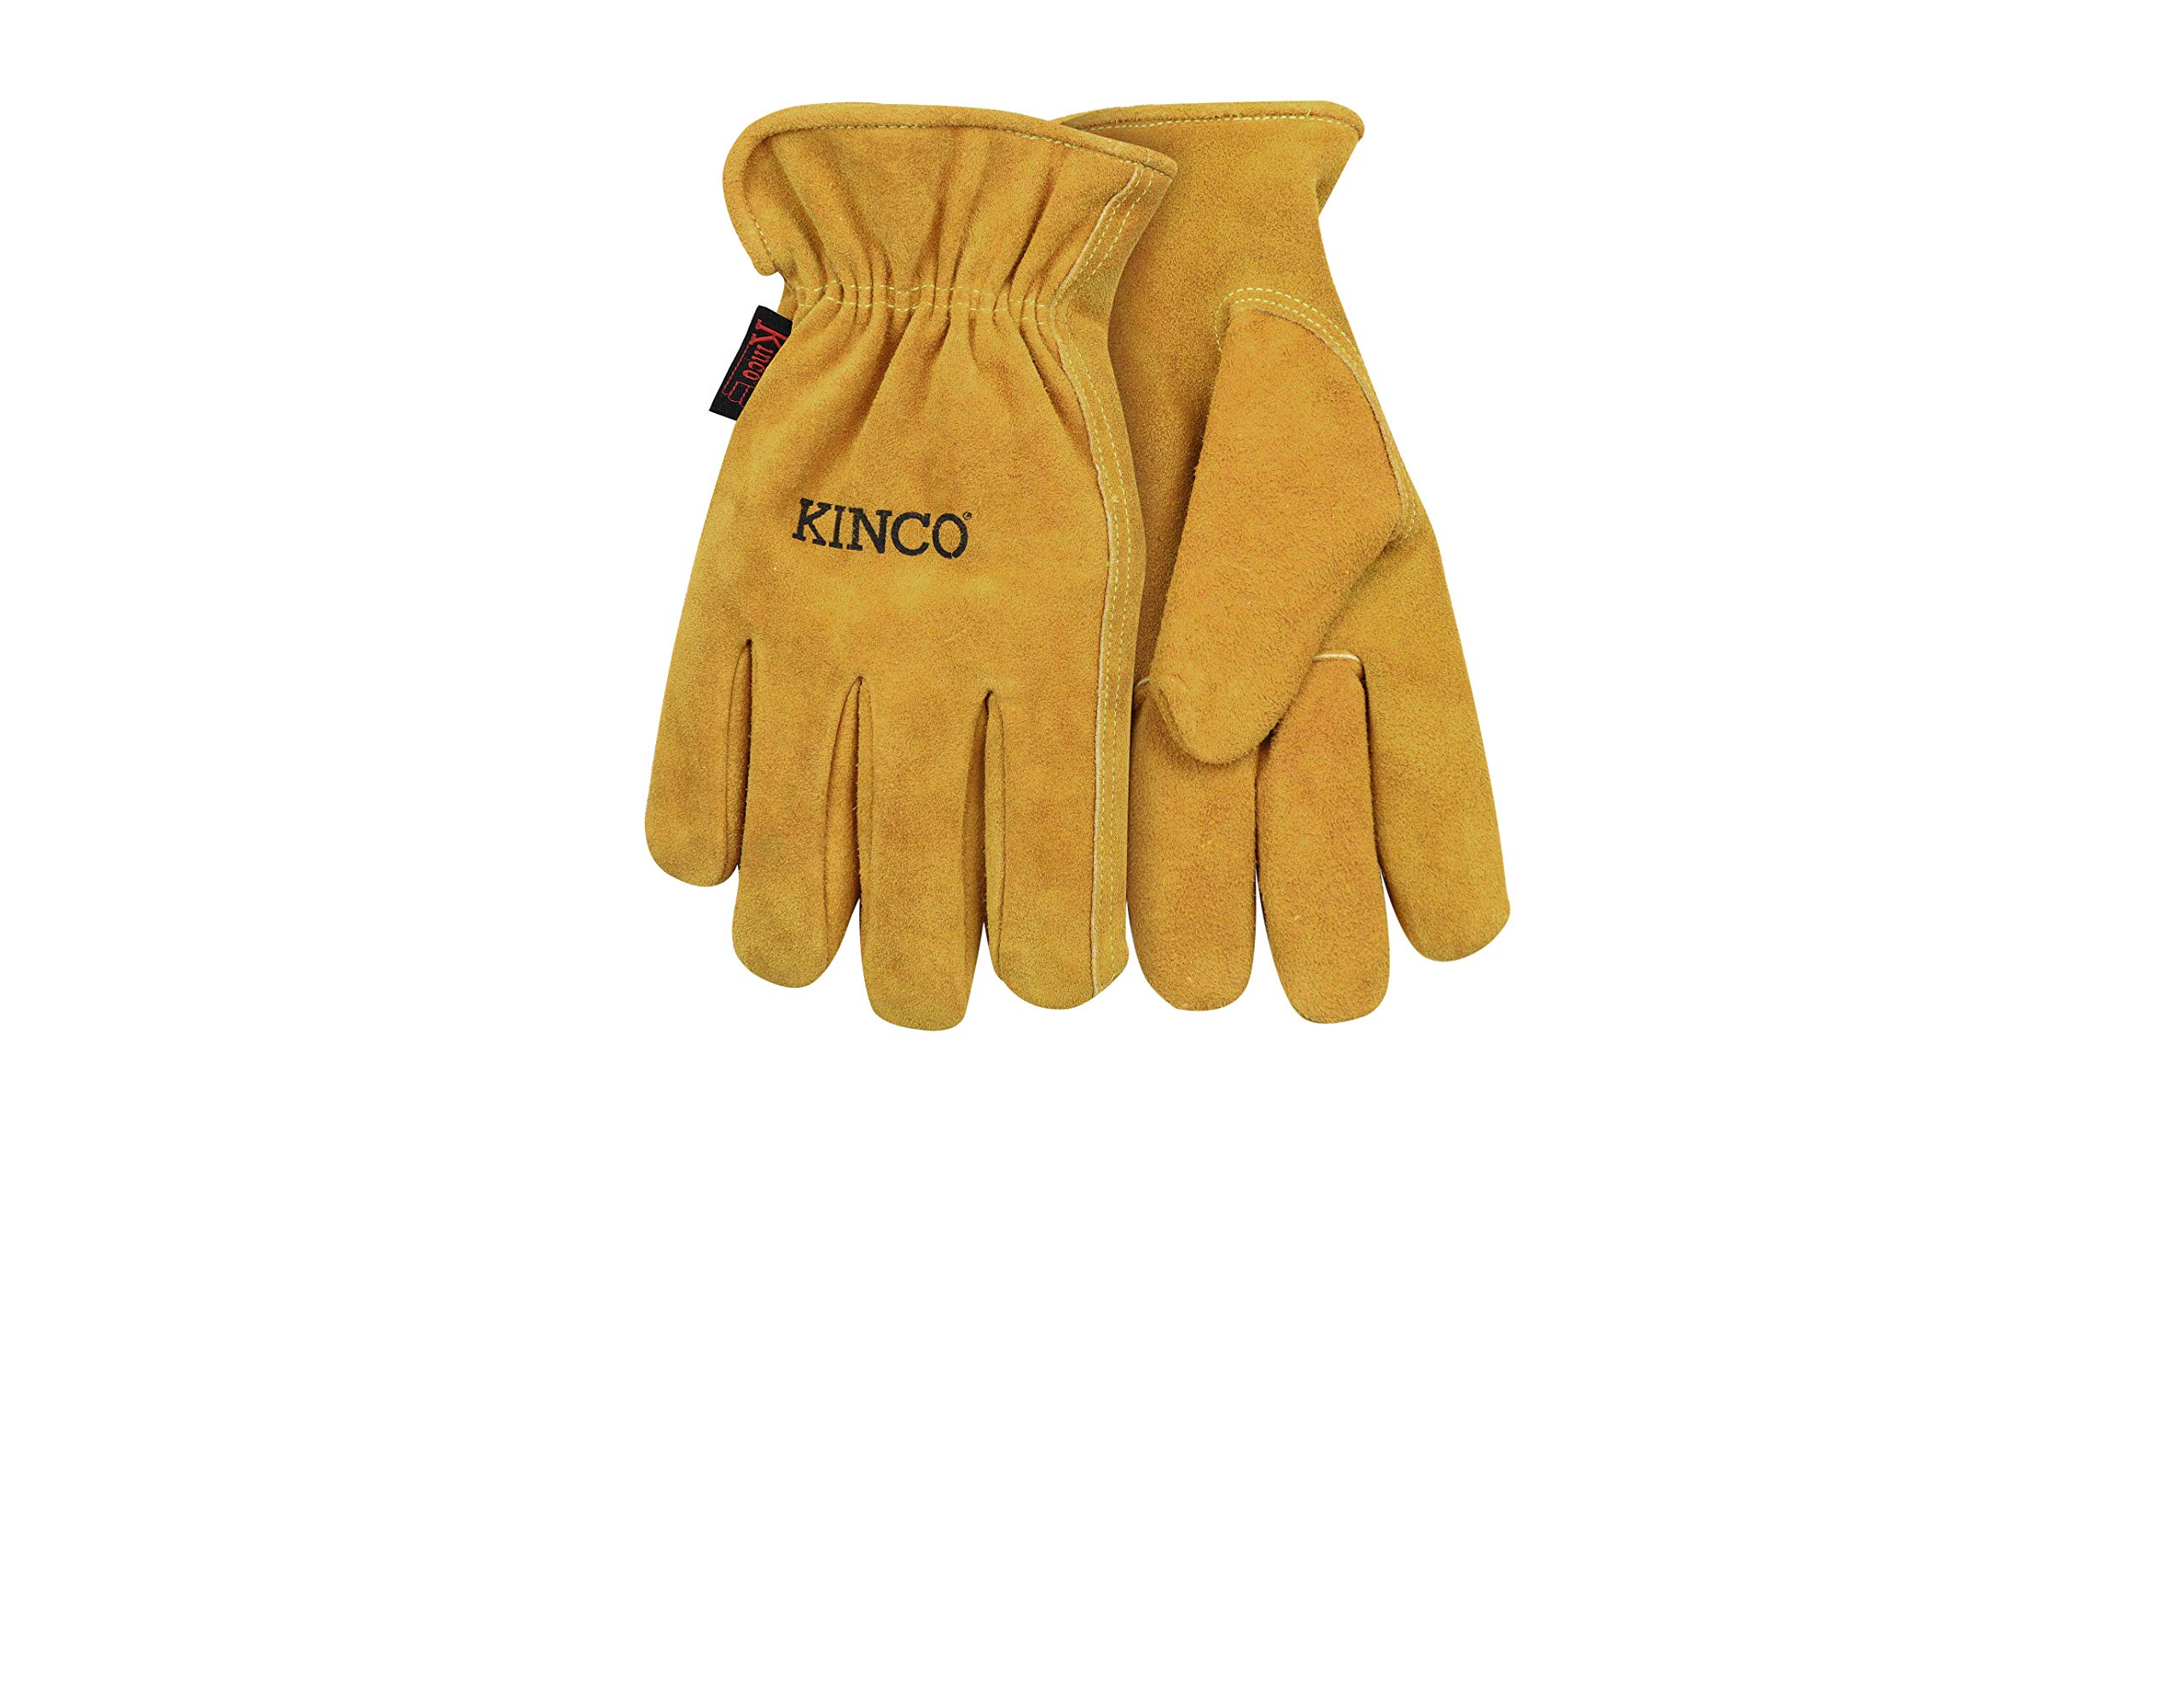 Kinco Suede Cowhide Driver